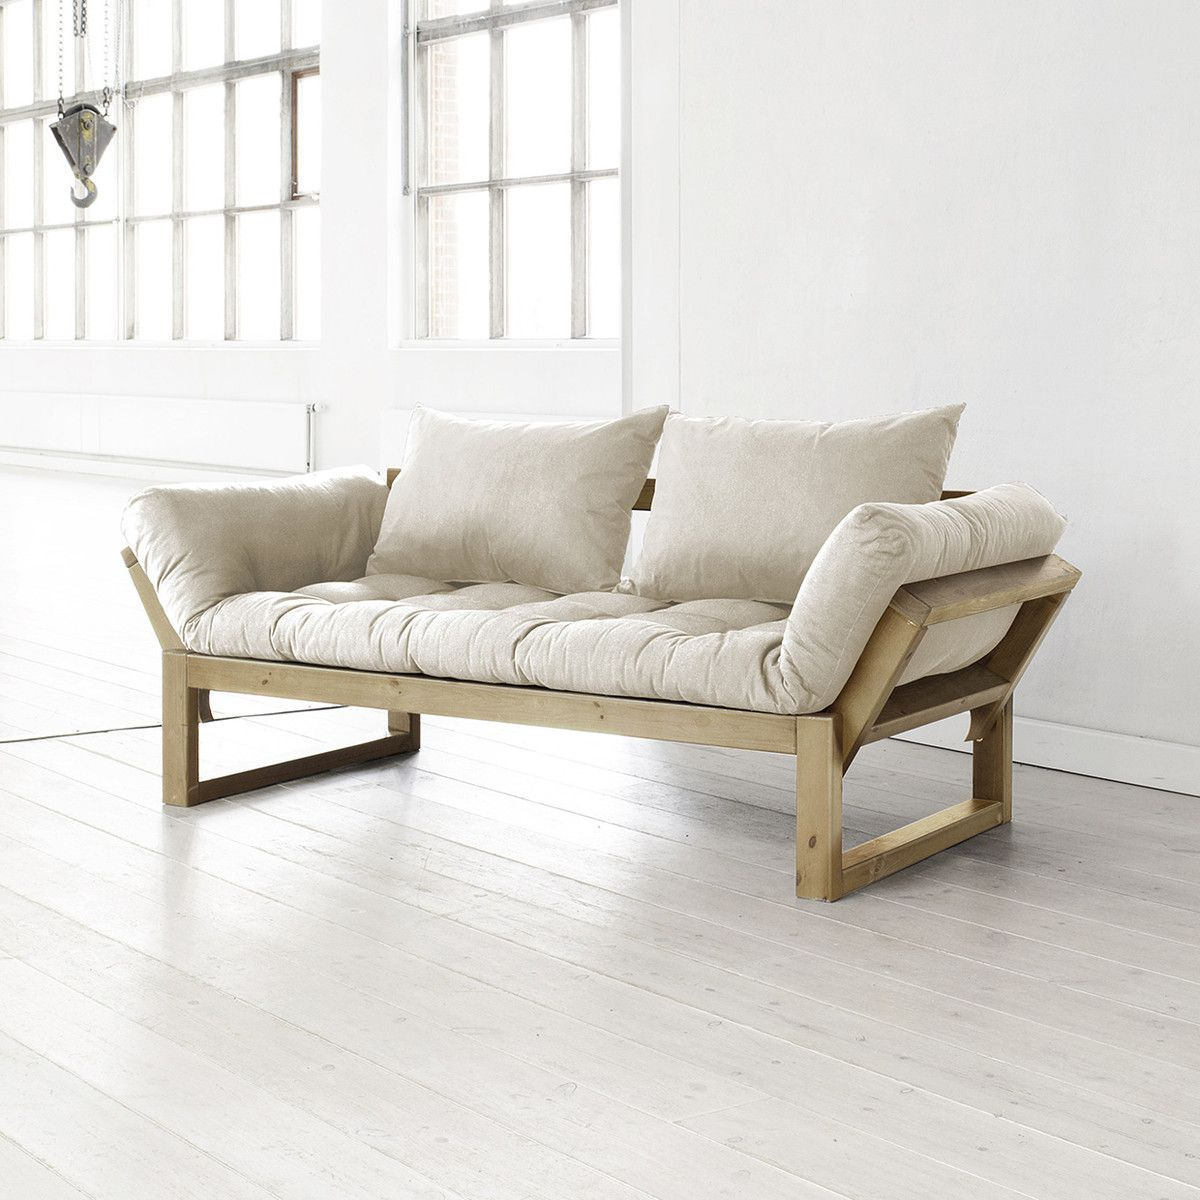 Delicieux Edge Sofa Bed By By KARUP. Furniture ...